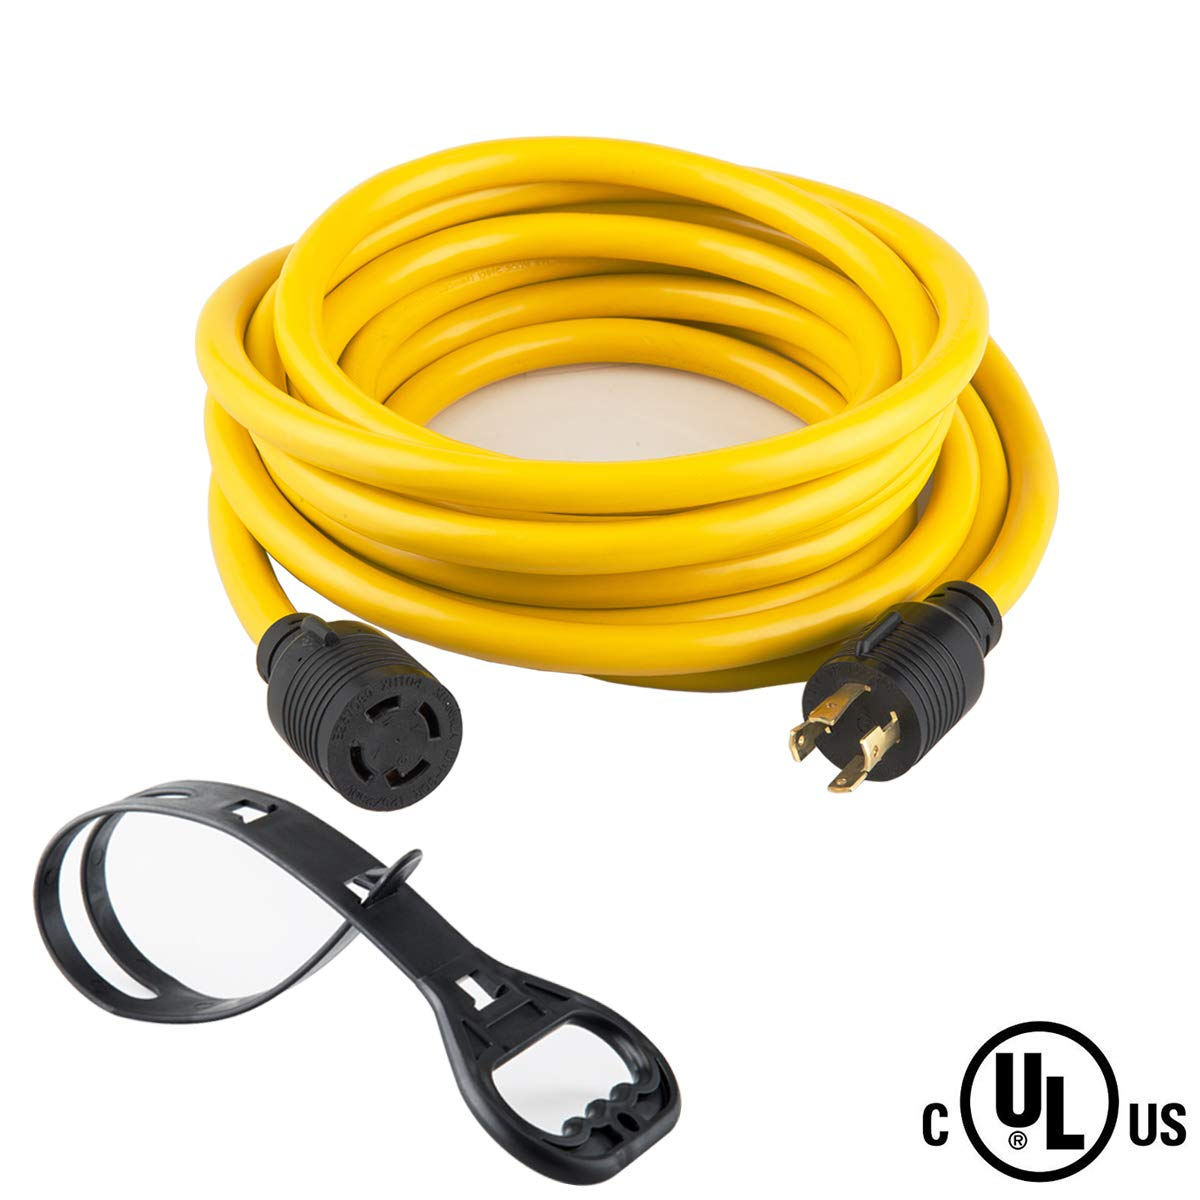 40FT Heavy Duty Generator Locking power cord NEMA L14-30P/L14-30R,4X10 Gauge SJTW Cable, 125/250V 30Amp 7500 Watts Yellow Generator Lock Extension Cord With UL listed Yodotek by Yodotek